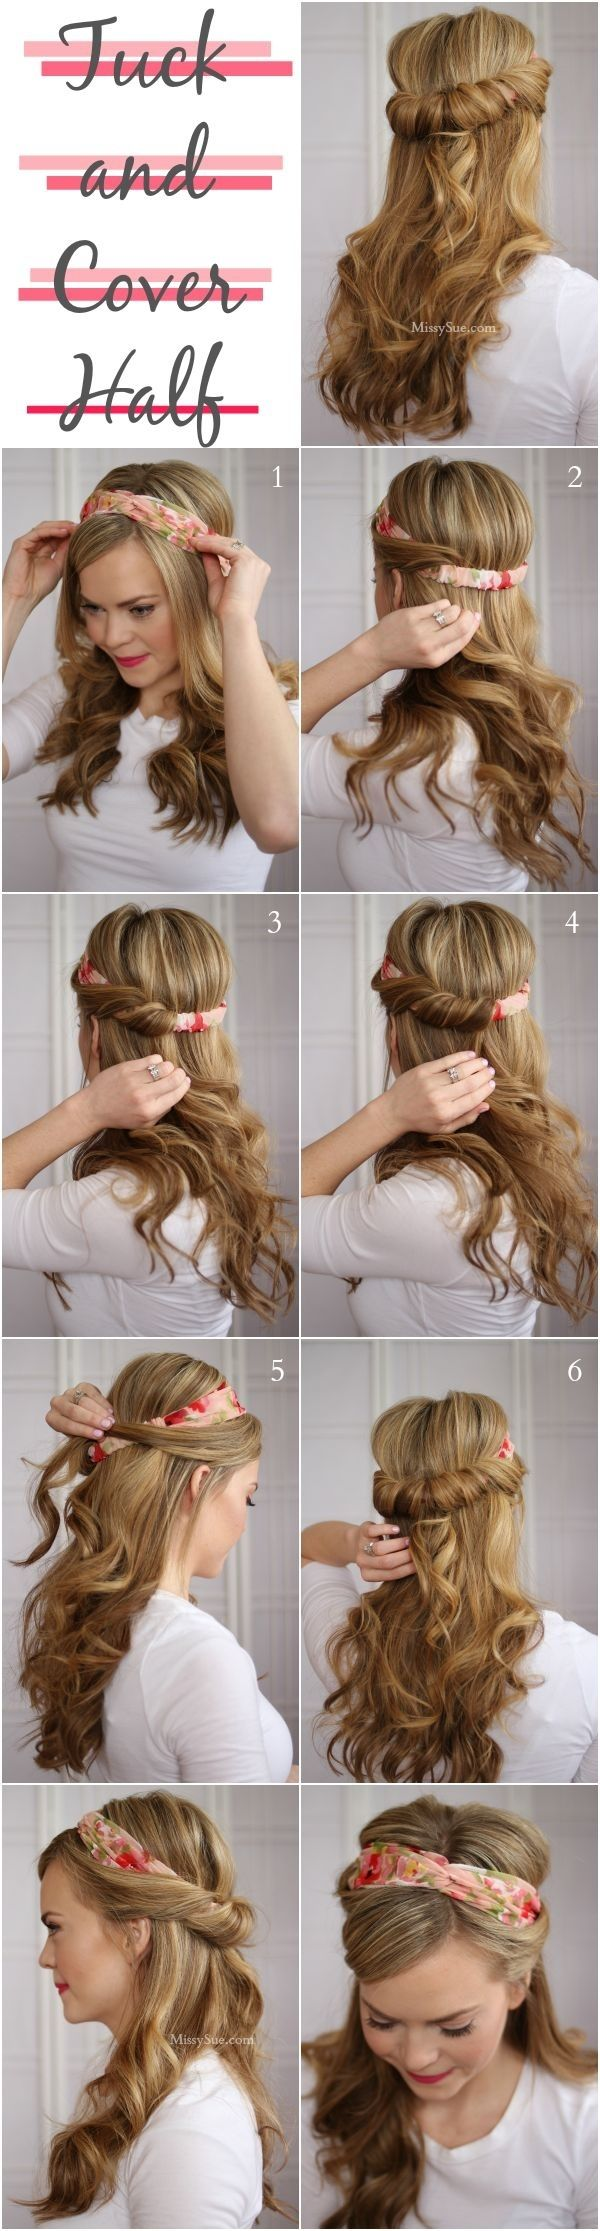 Pretty my style pinterest lazy girl lazy girl hairstyles and